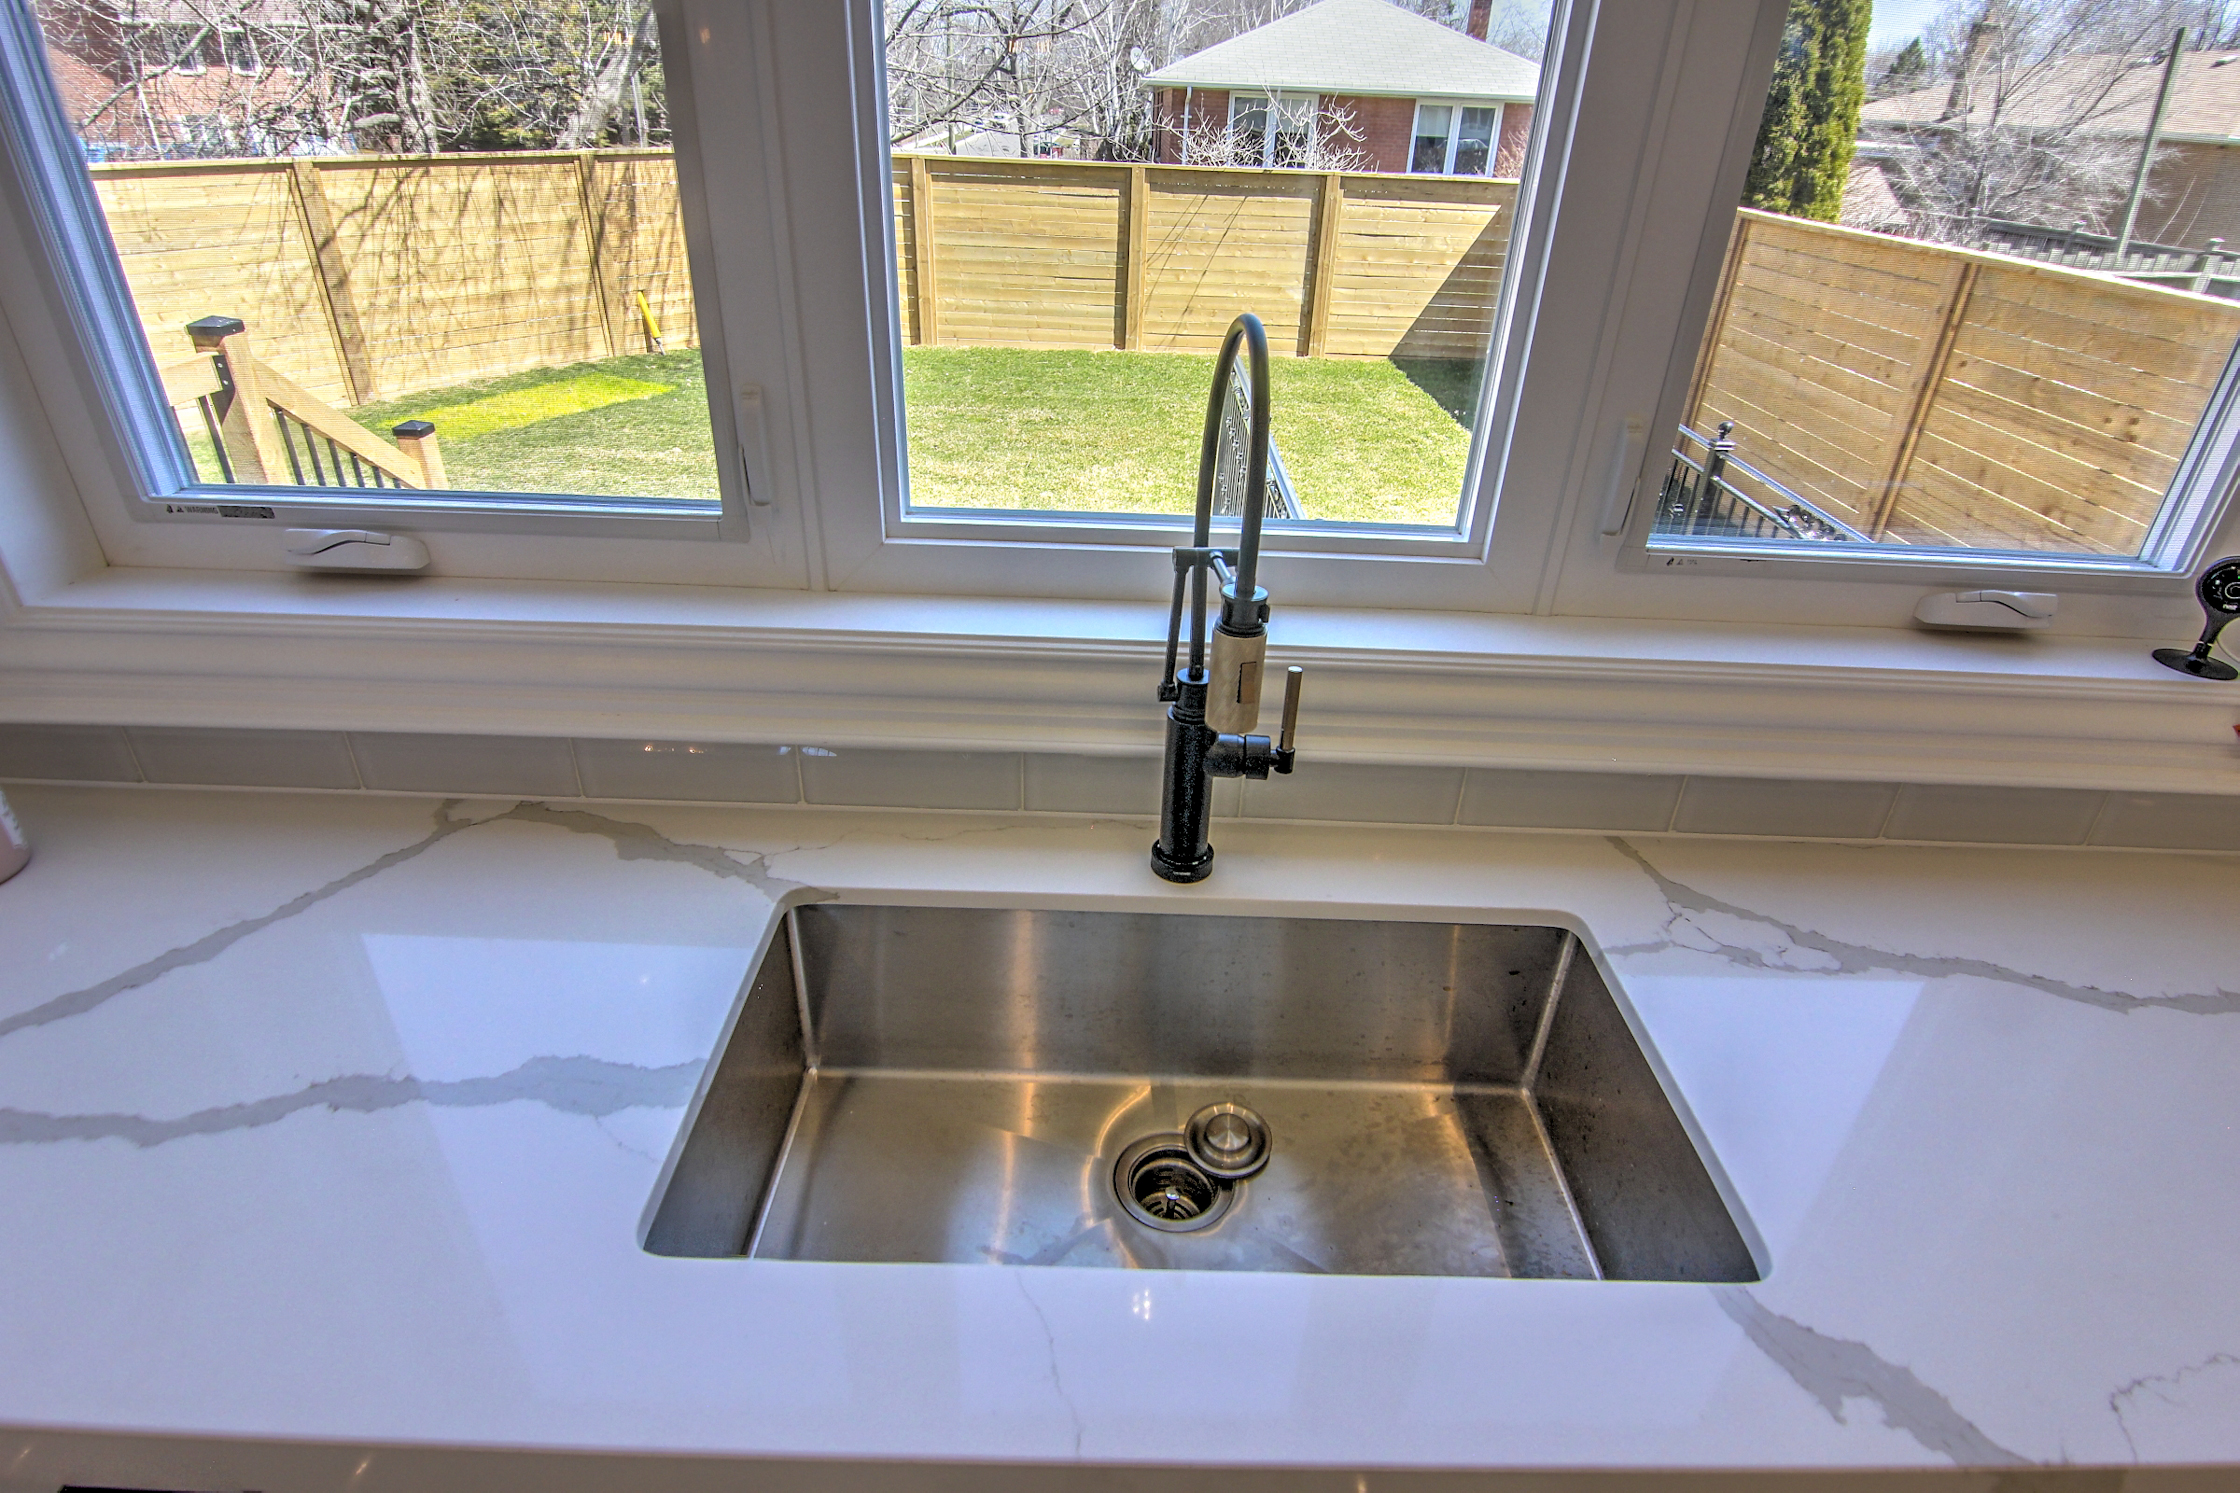 Sink and Backyard View